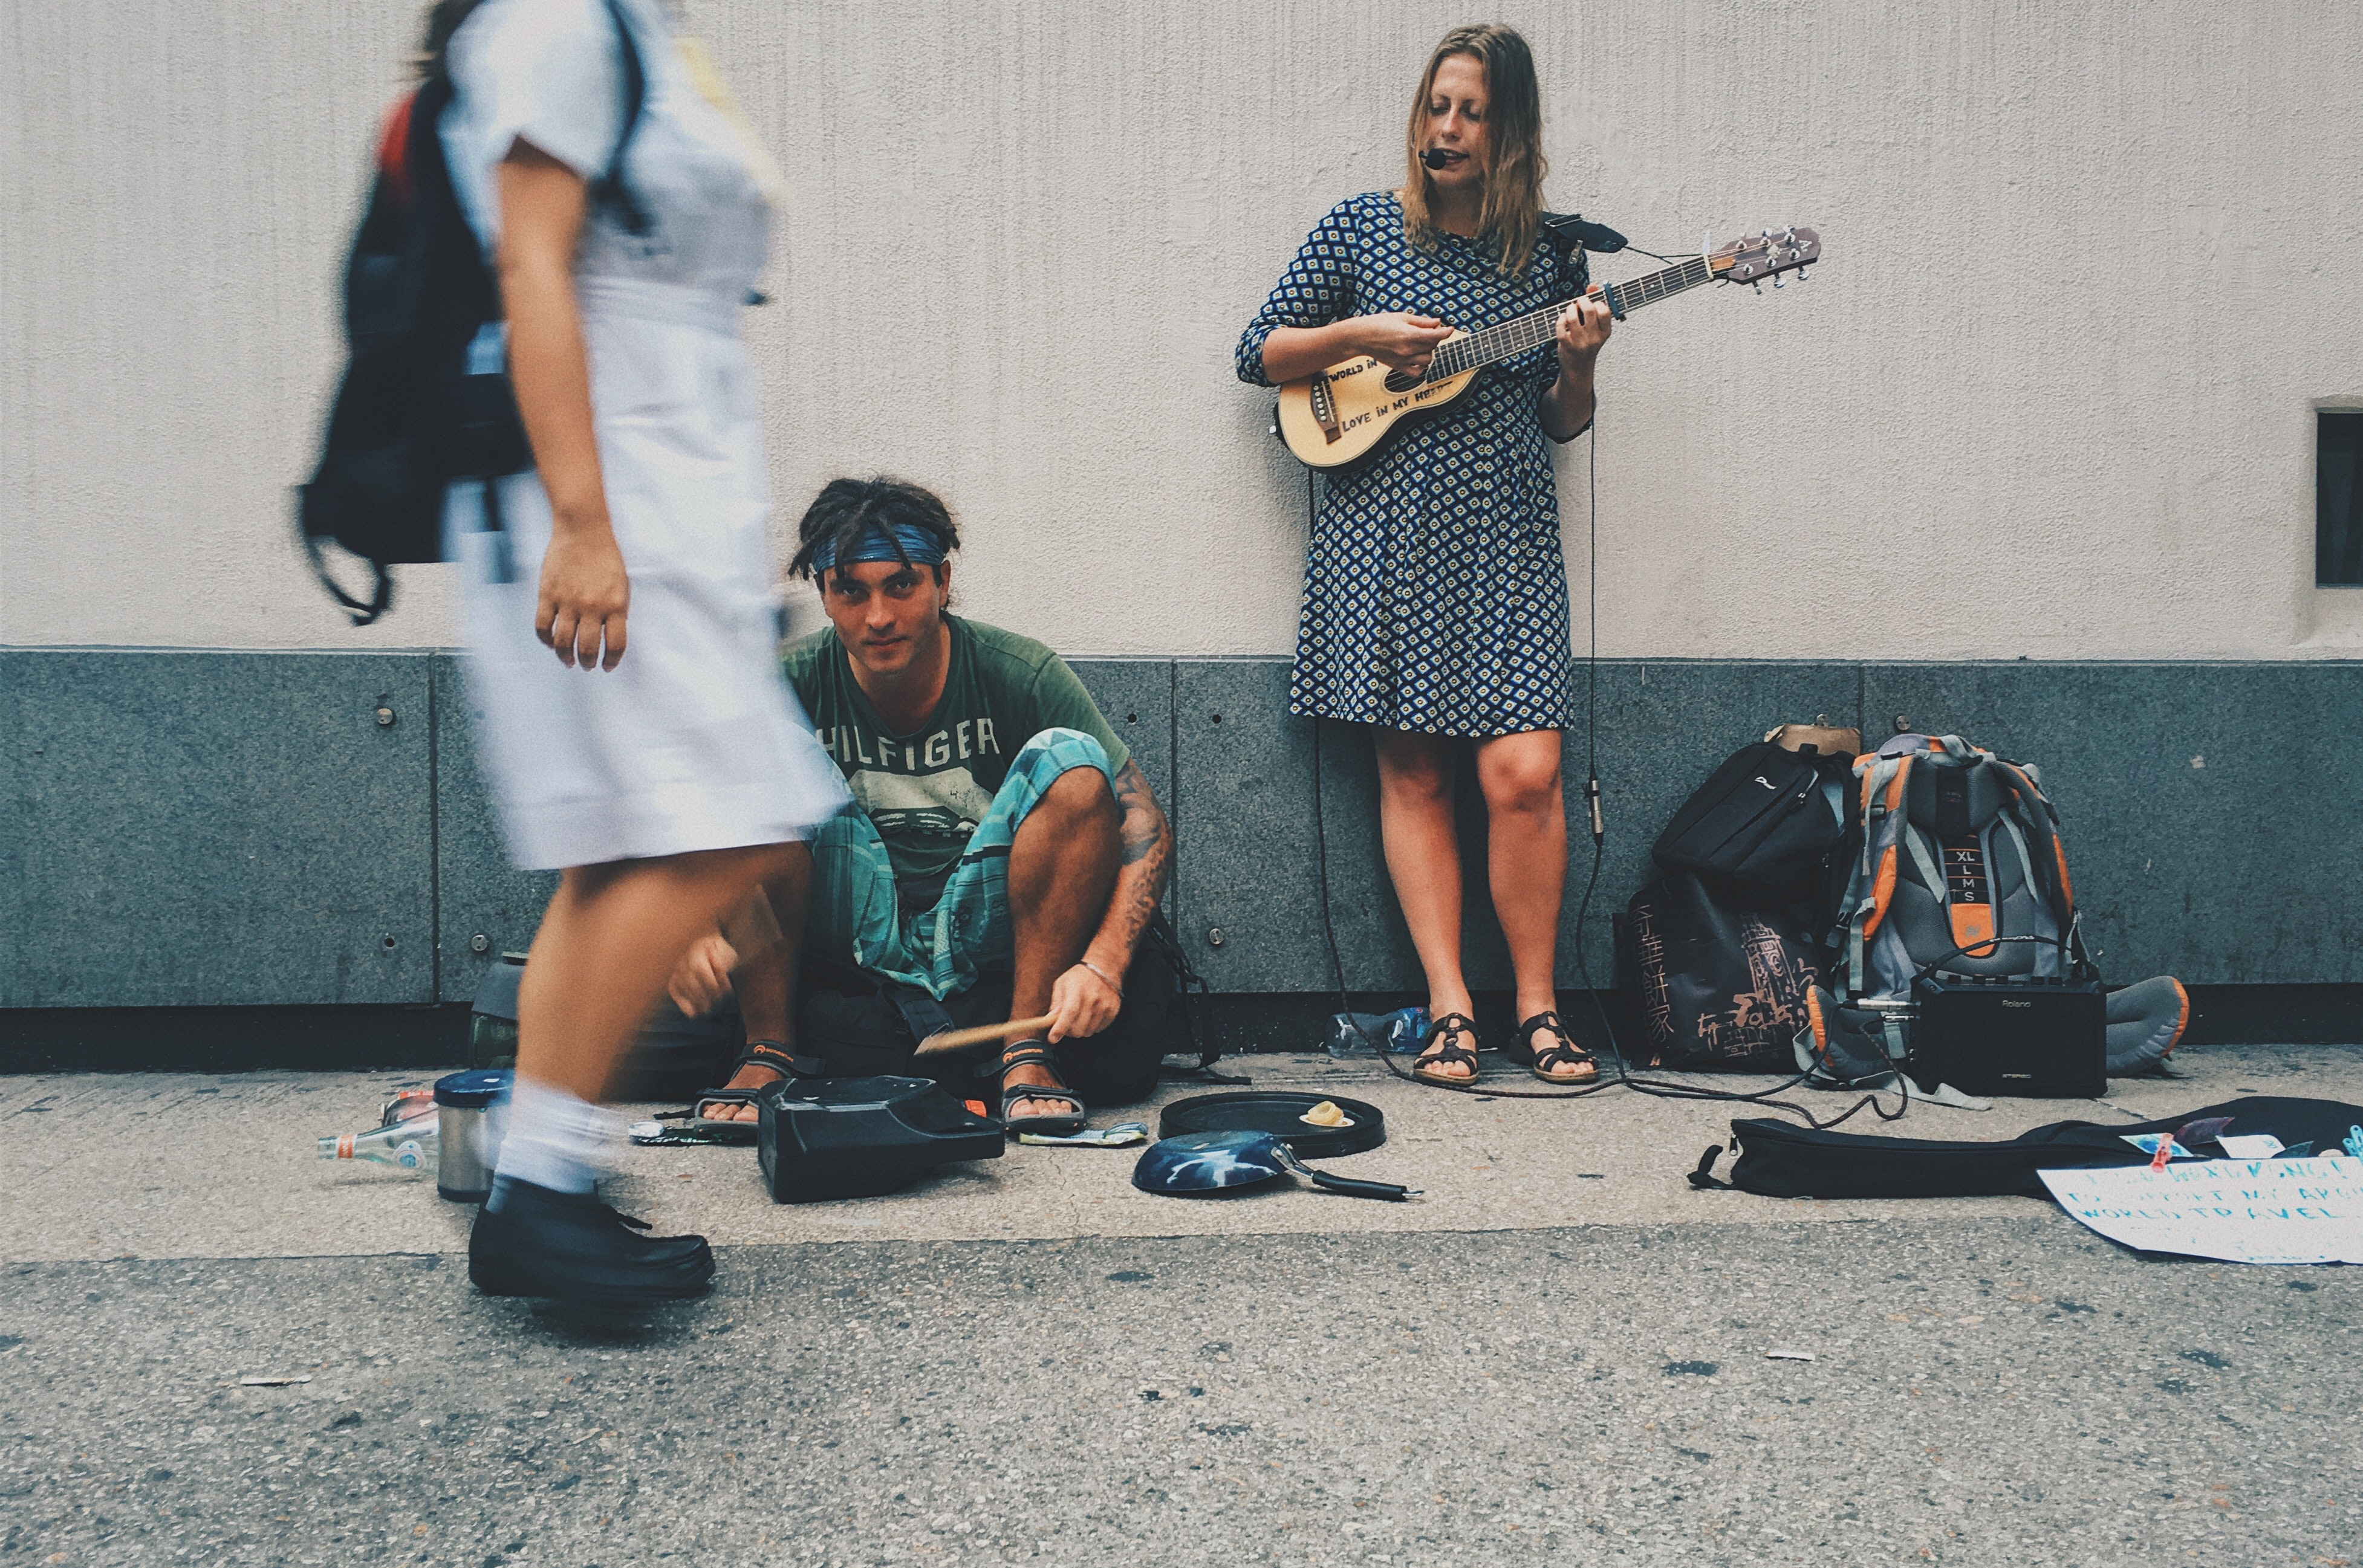 woman playing guitar on street